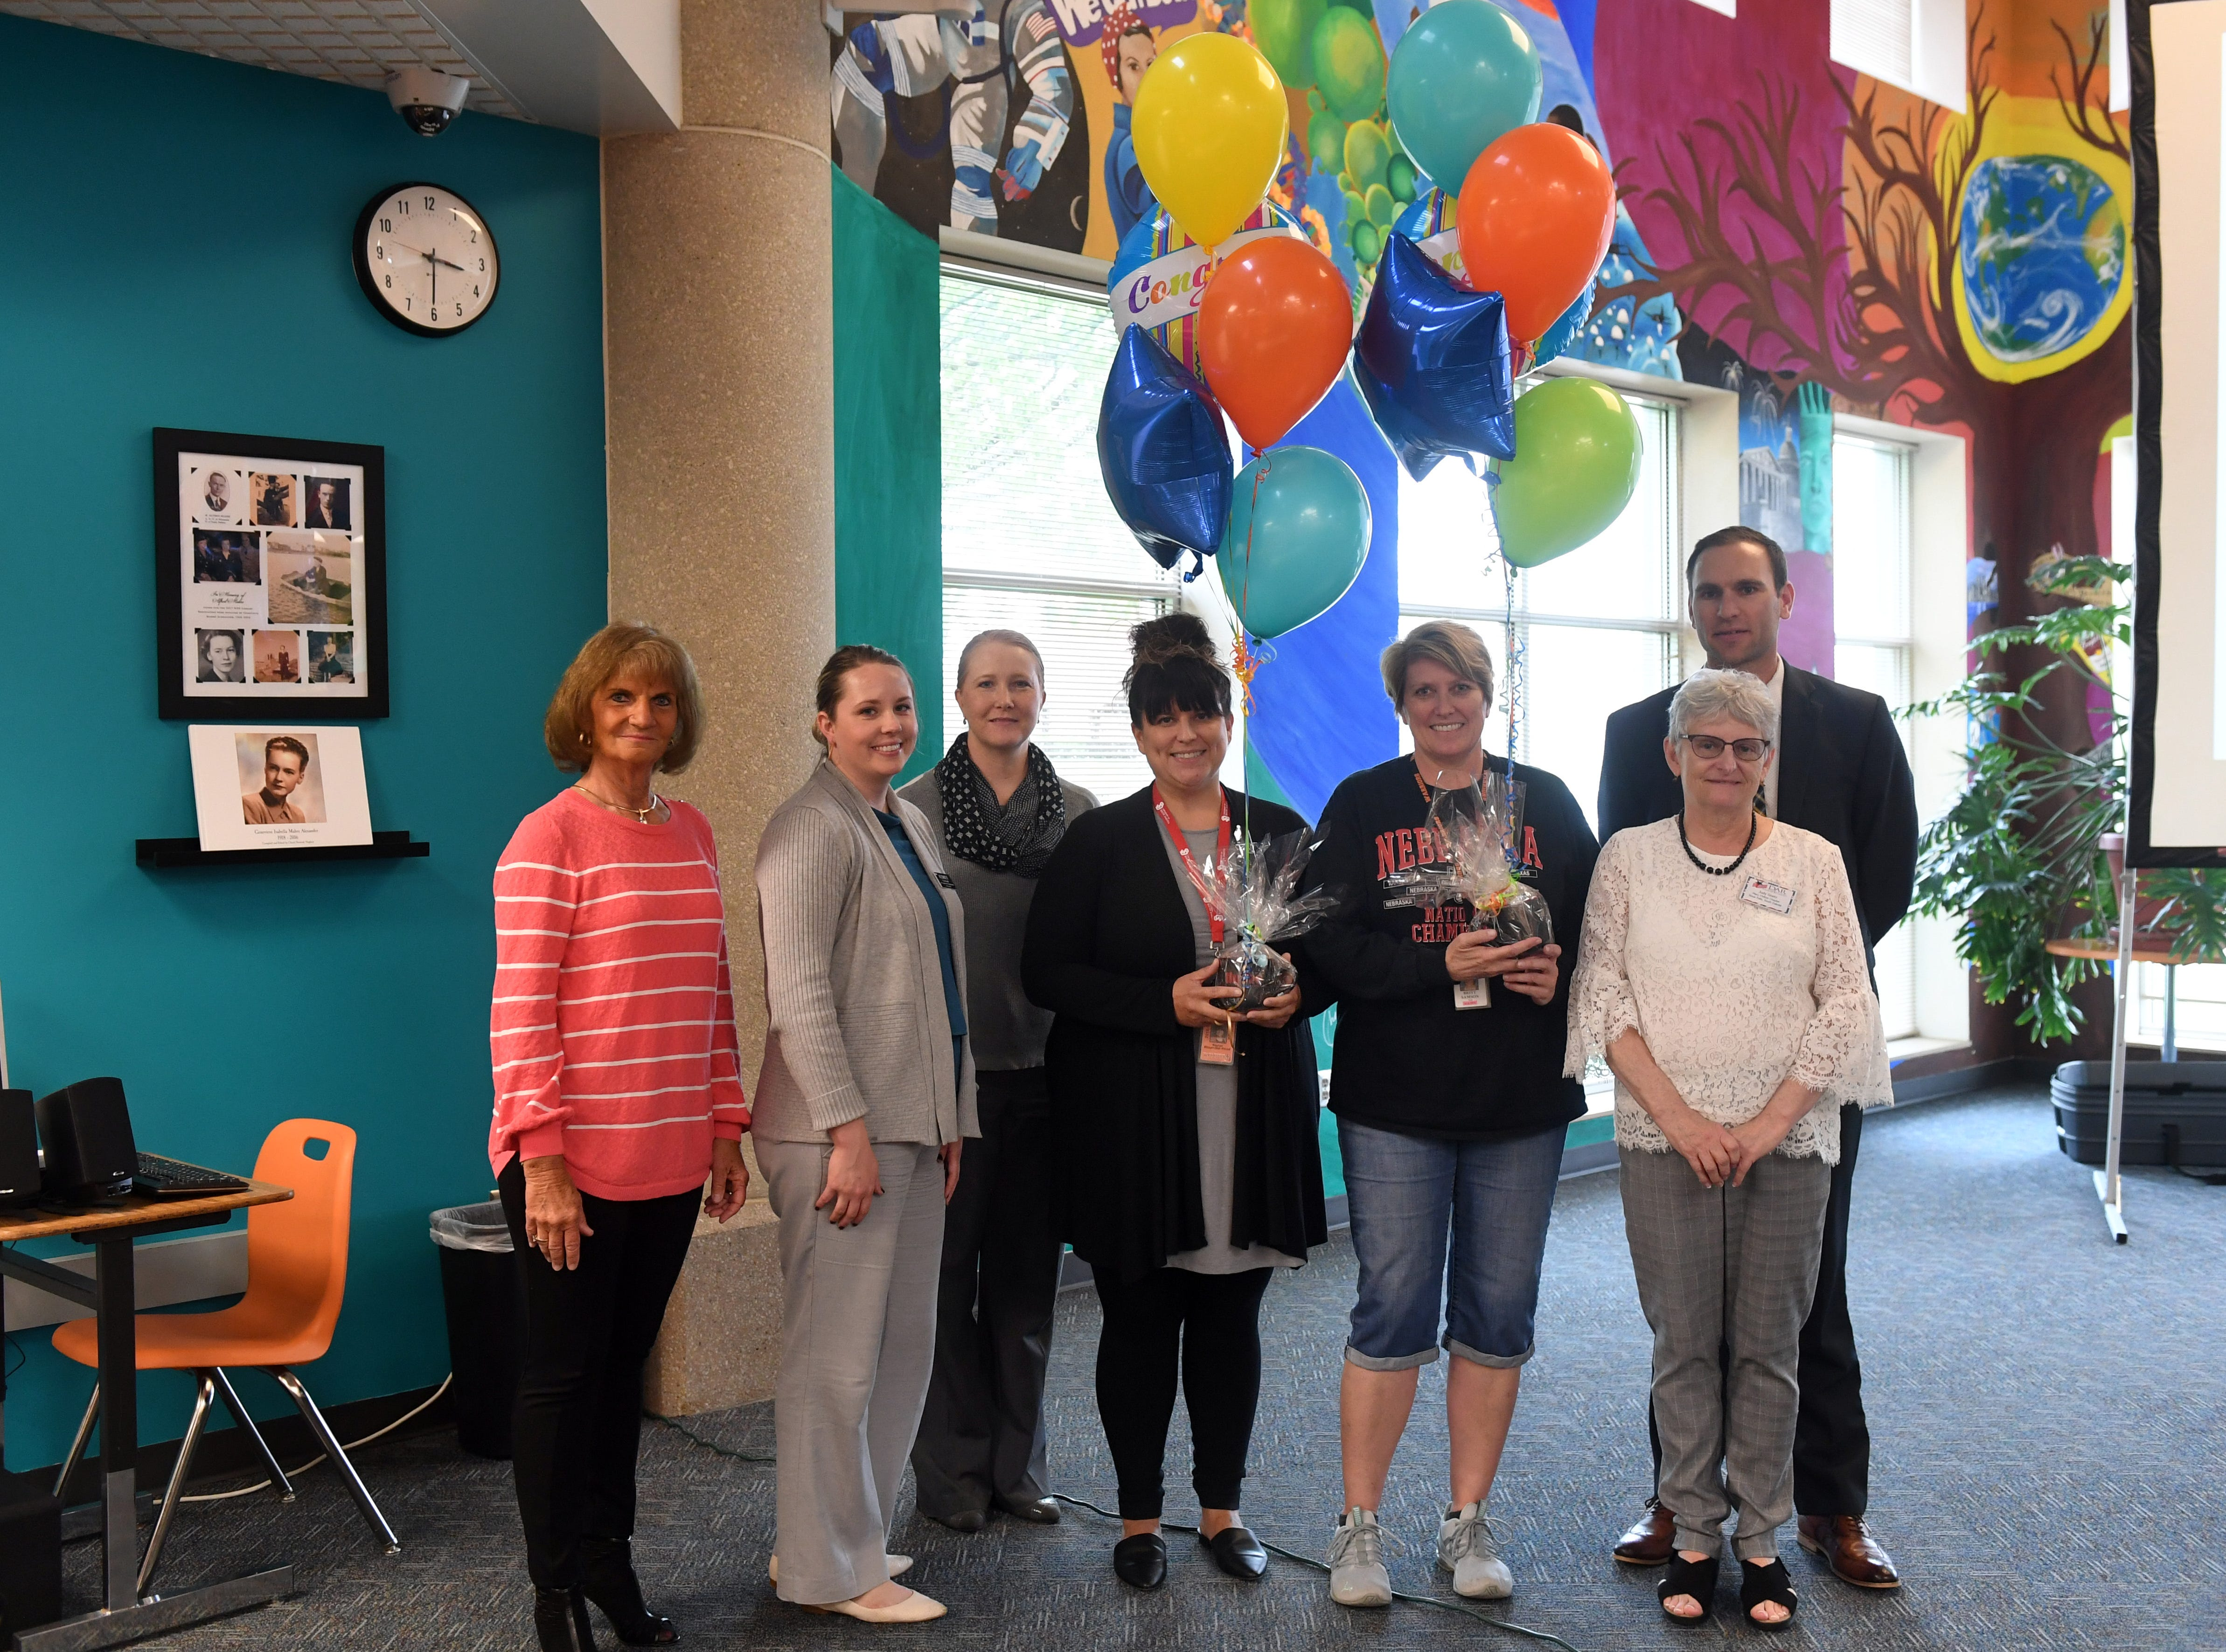 Members of the grants committee and Sioux Falls School District gather around grant winners Meghan WoundedHead and Britt Samson, center, after surprising them with the news that they won Wednesday, May 8, at Washington High School.